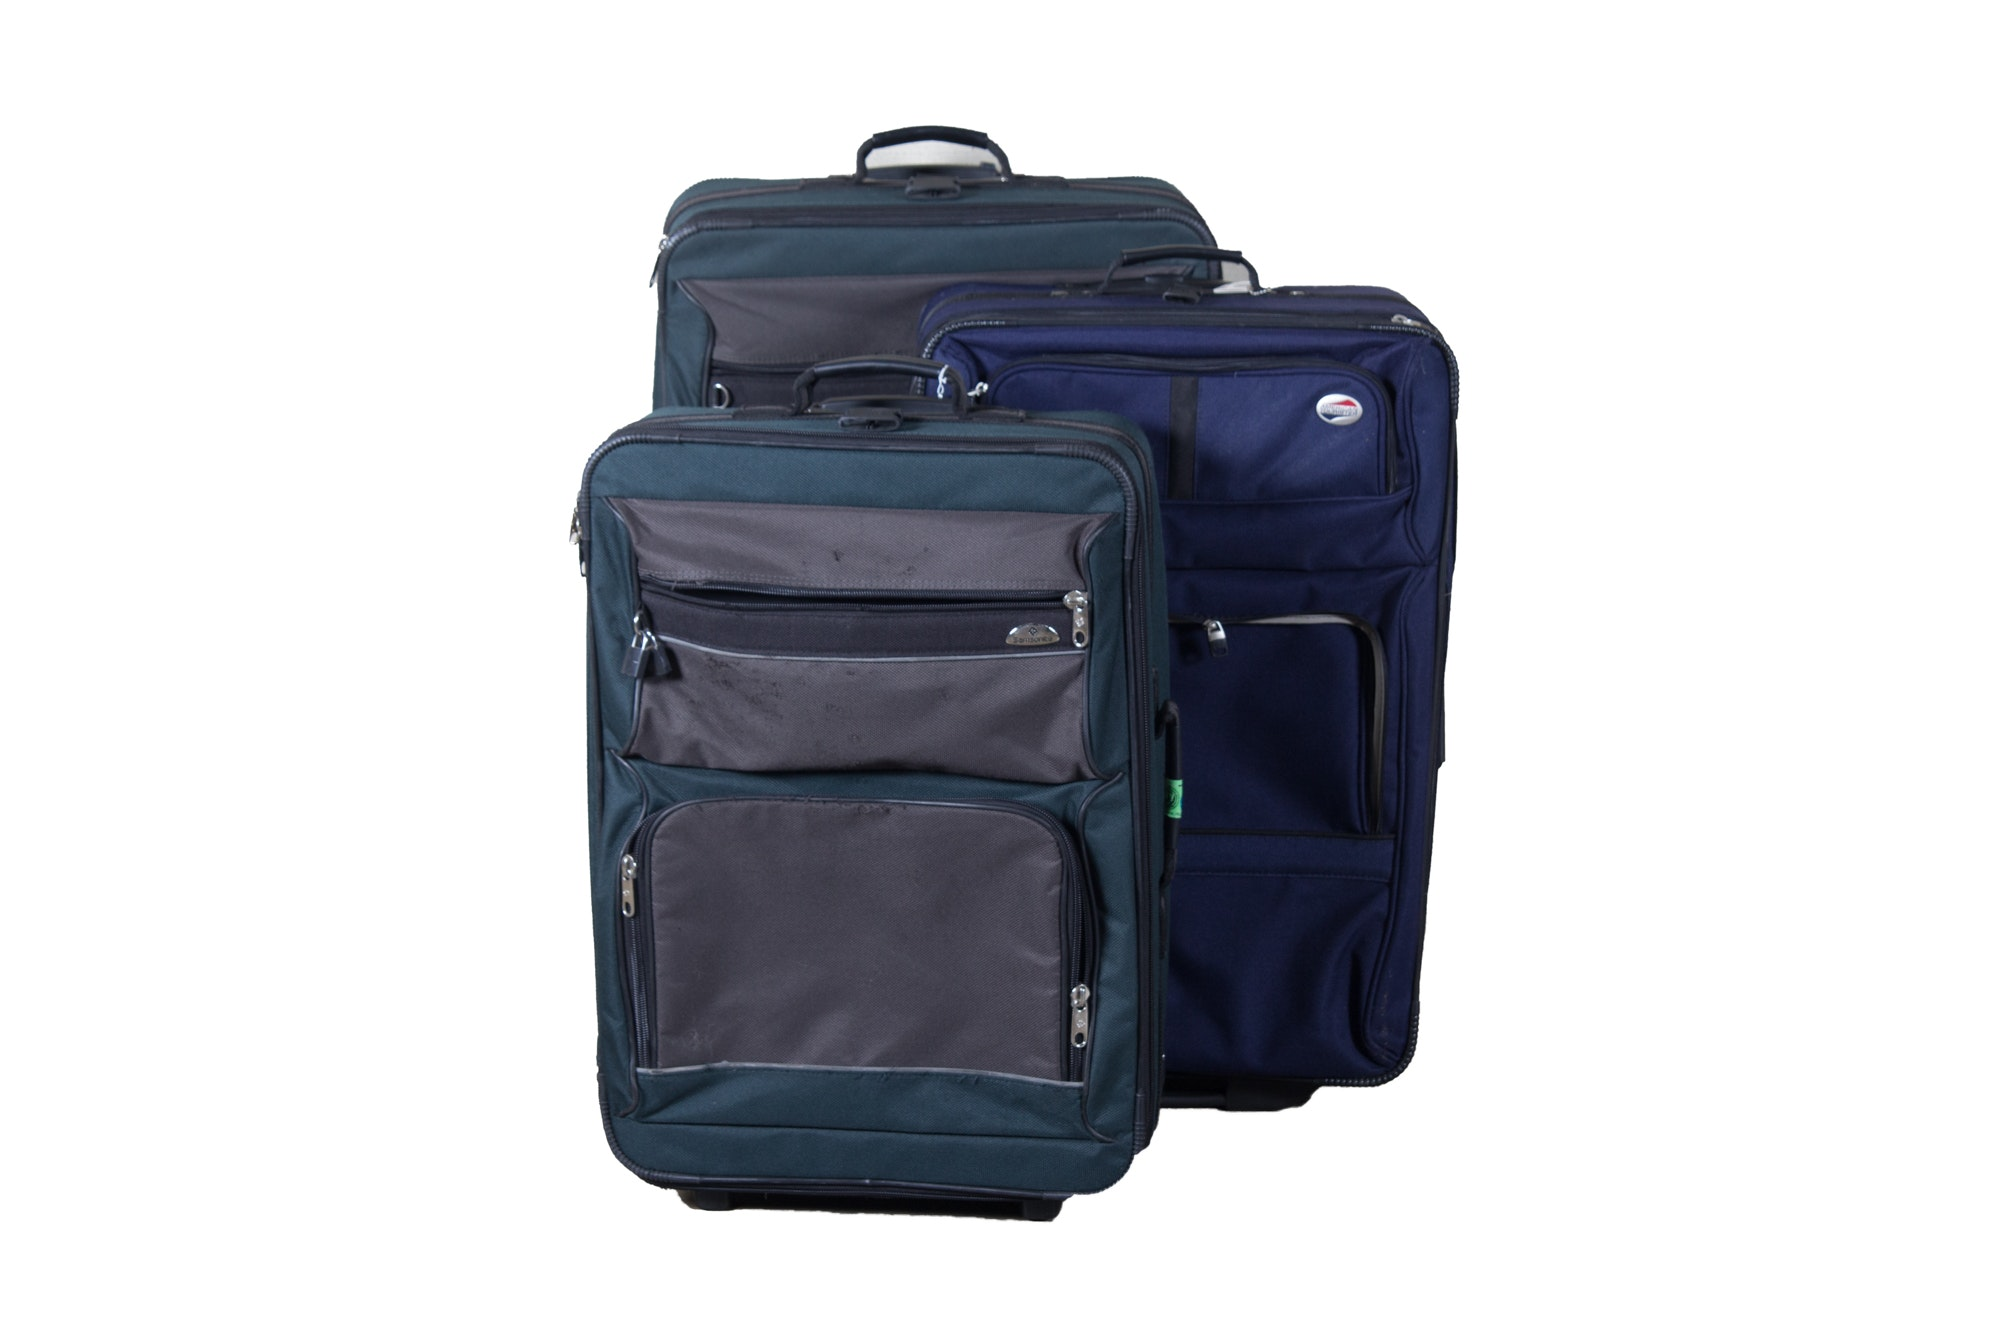 Three Luggage Including Samsonite and American Tourister